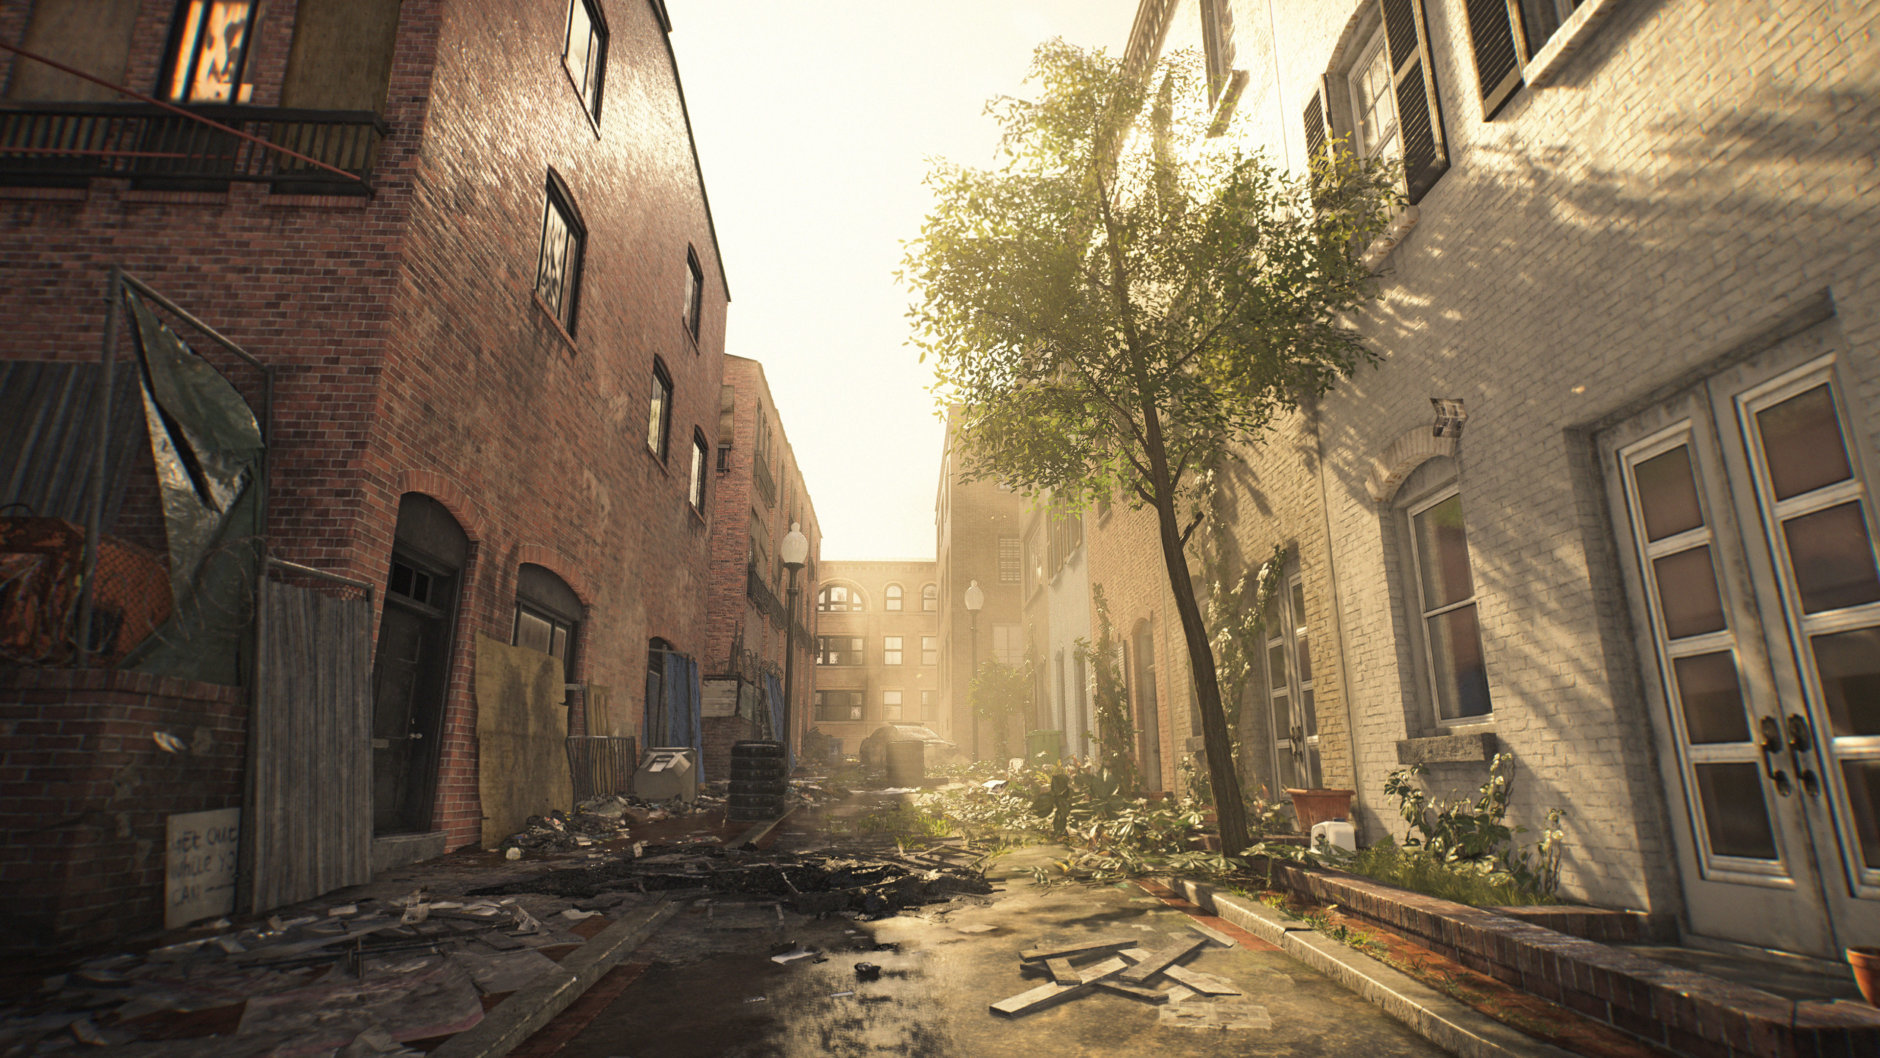 Overgrowth and trash litter the streets of Georgetown in Division 2. (Courtesy Ubisoft/Massive)